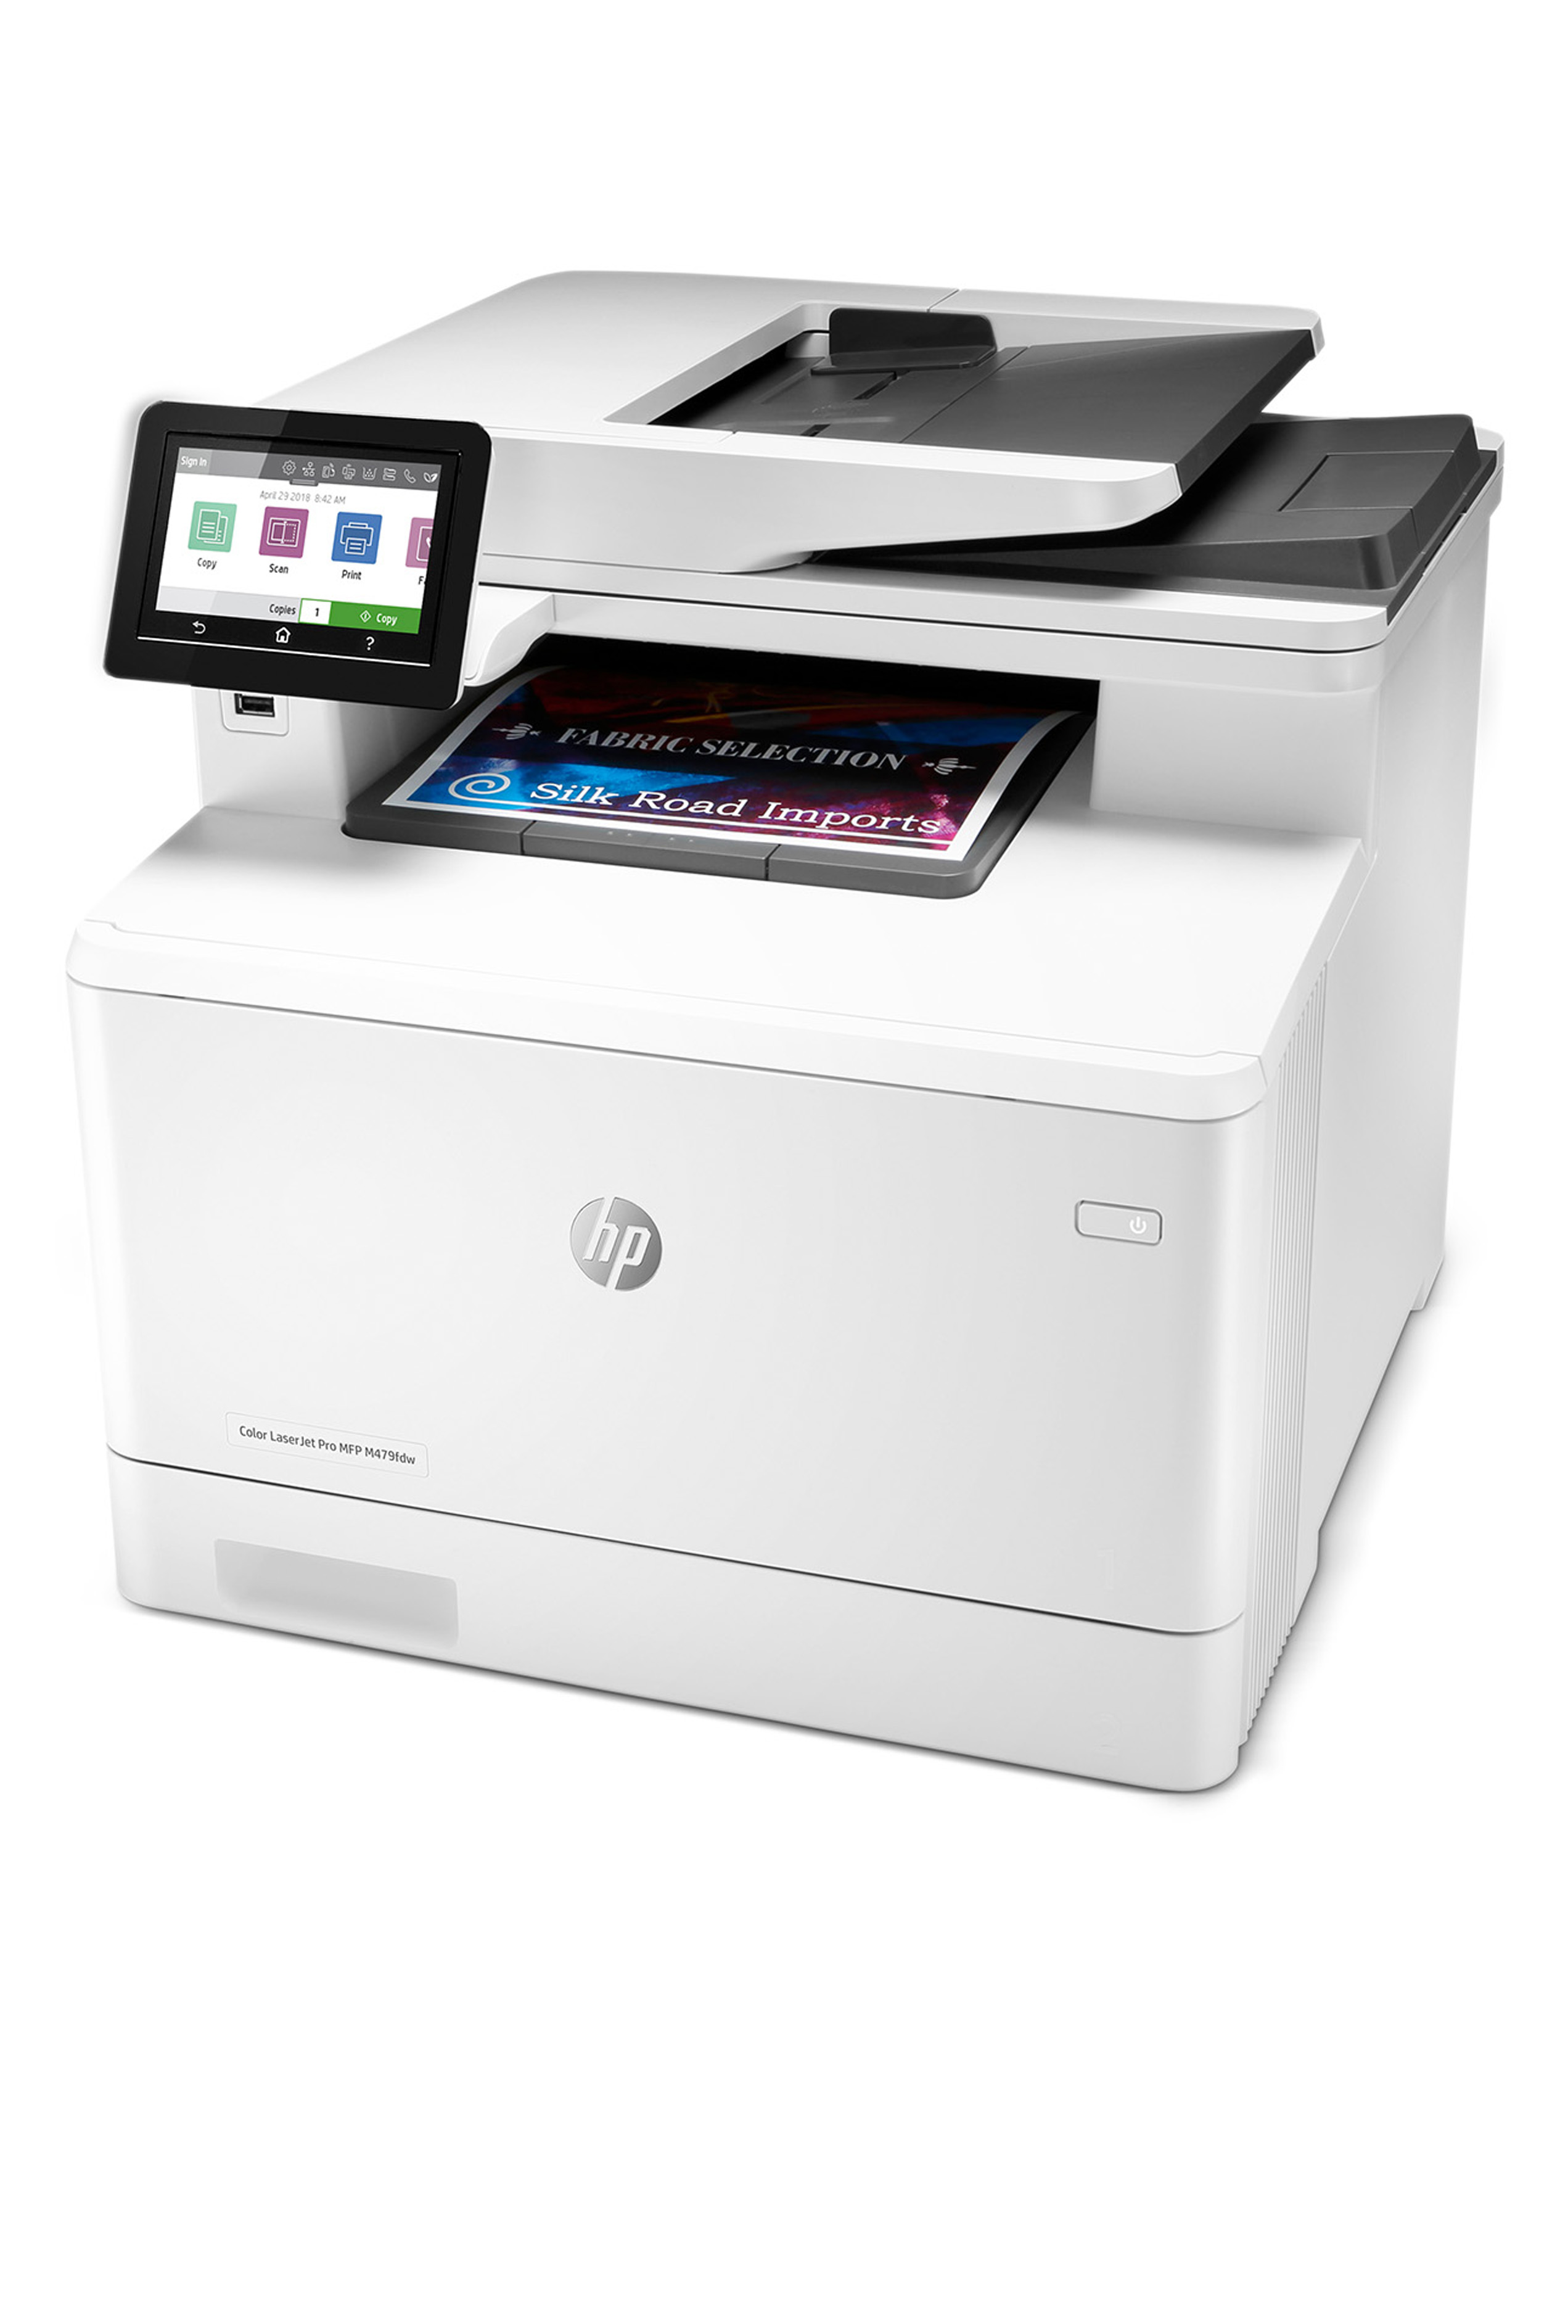 HP Color LaserJet Pro MFP M479dw (28/27 ppm)